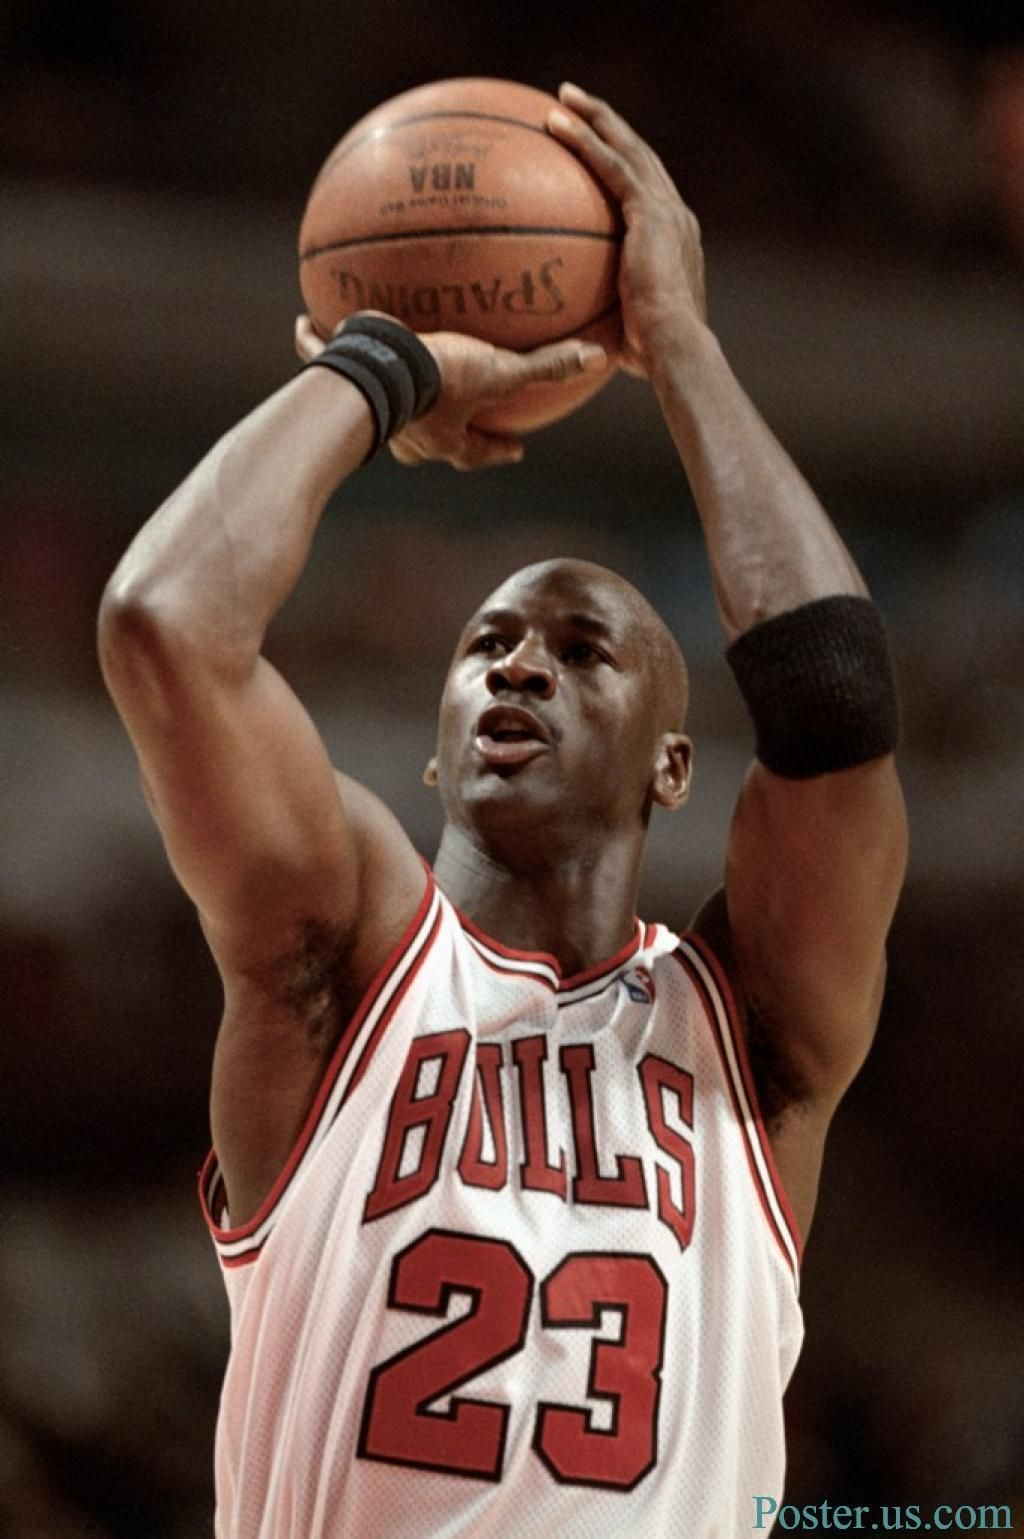 a biography of michael jordan a basketball player Born on february 17, 1963, michael jeffrey jordan often called by his initials, mj, is a former american professional basketball player and entrepreneur who is widely regarded as the greatest basketball player of all time.